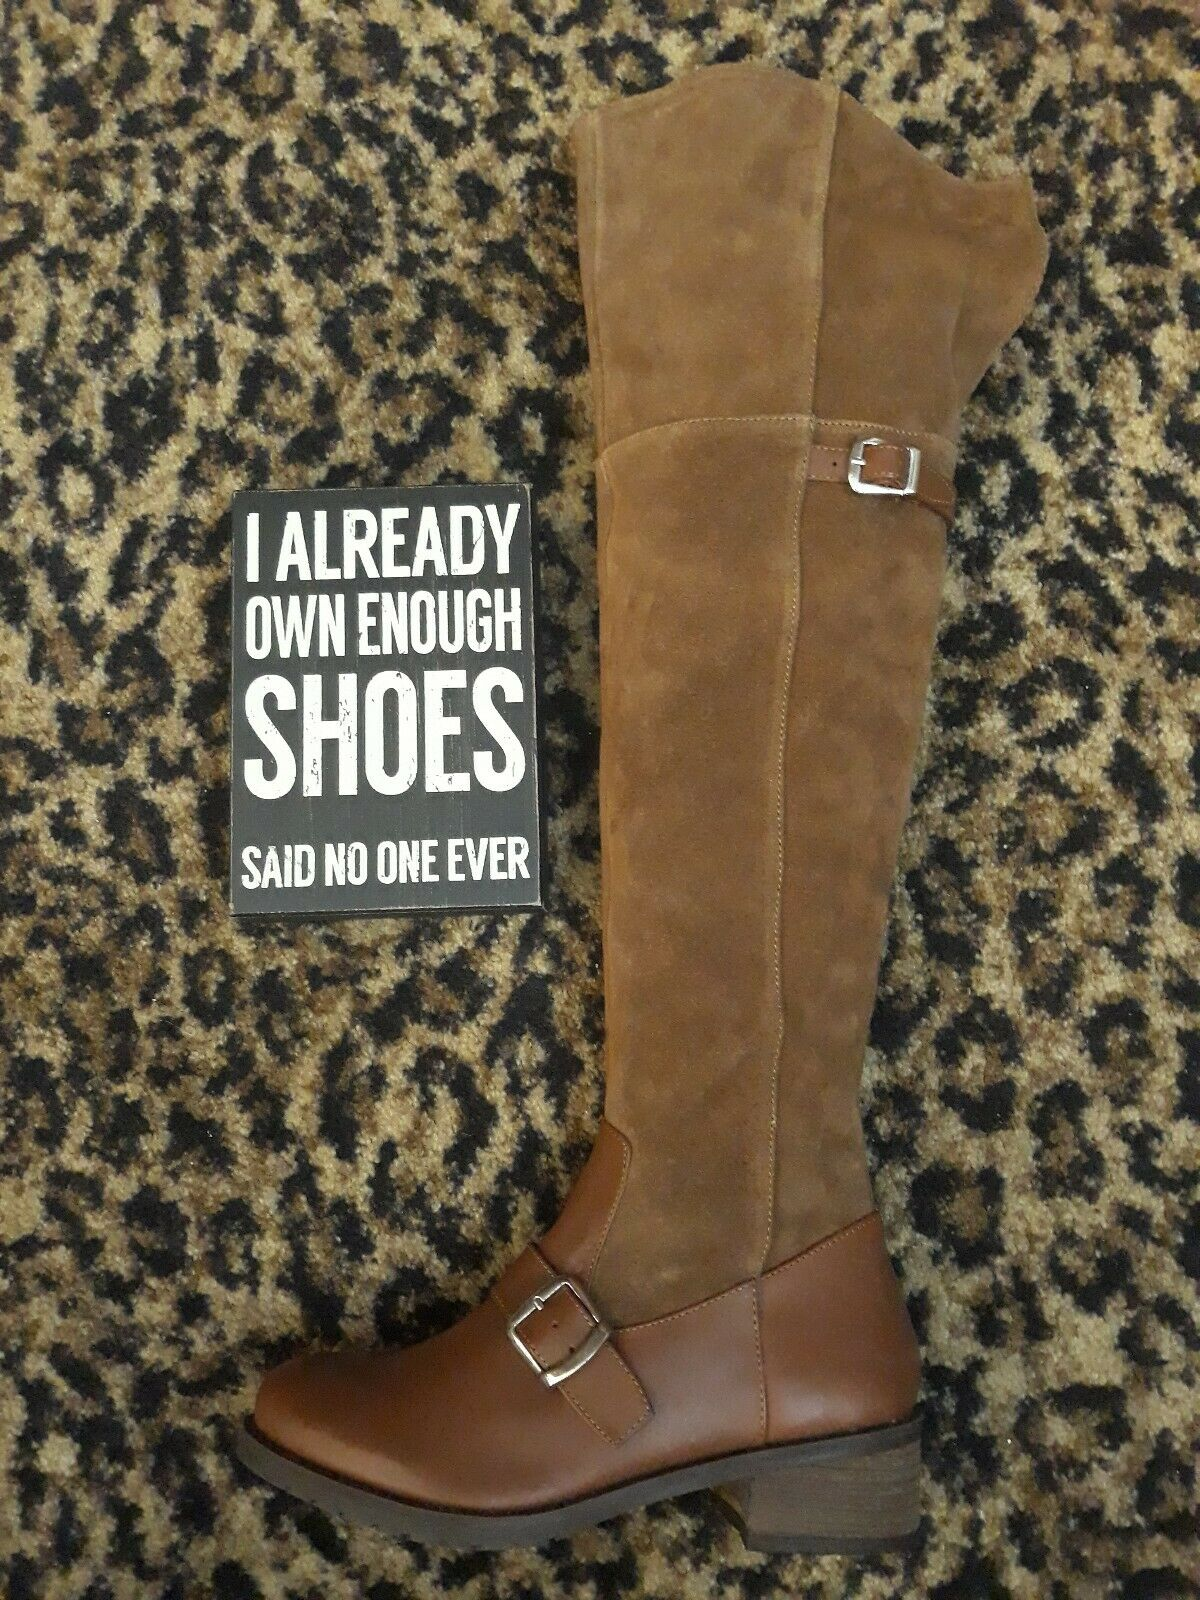 Matisse Lola Over Knee Tall Riding Boot Equestrian Brown Suede Leather  6 M